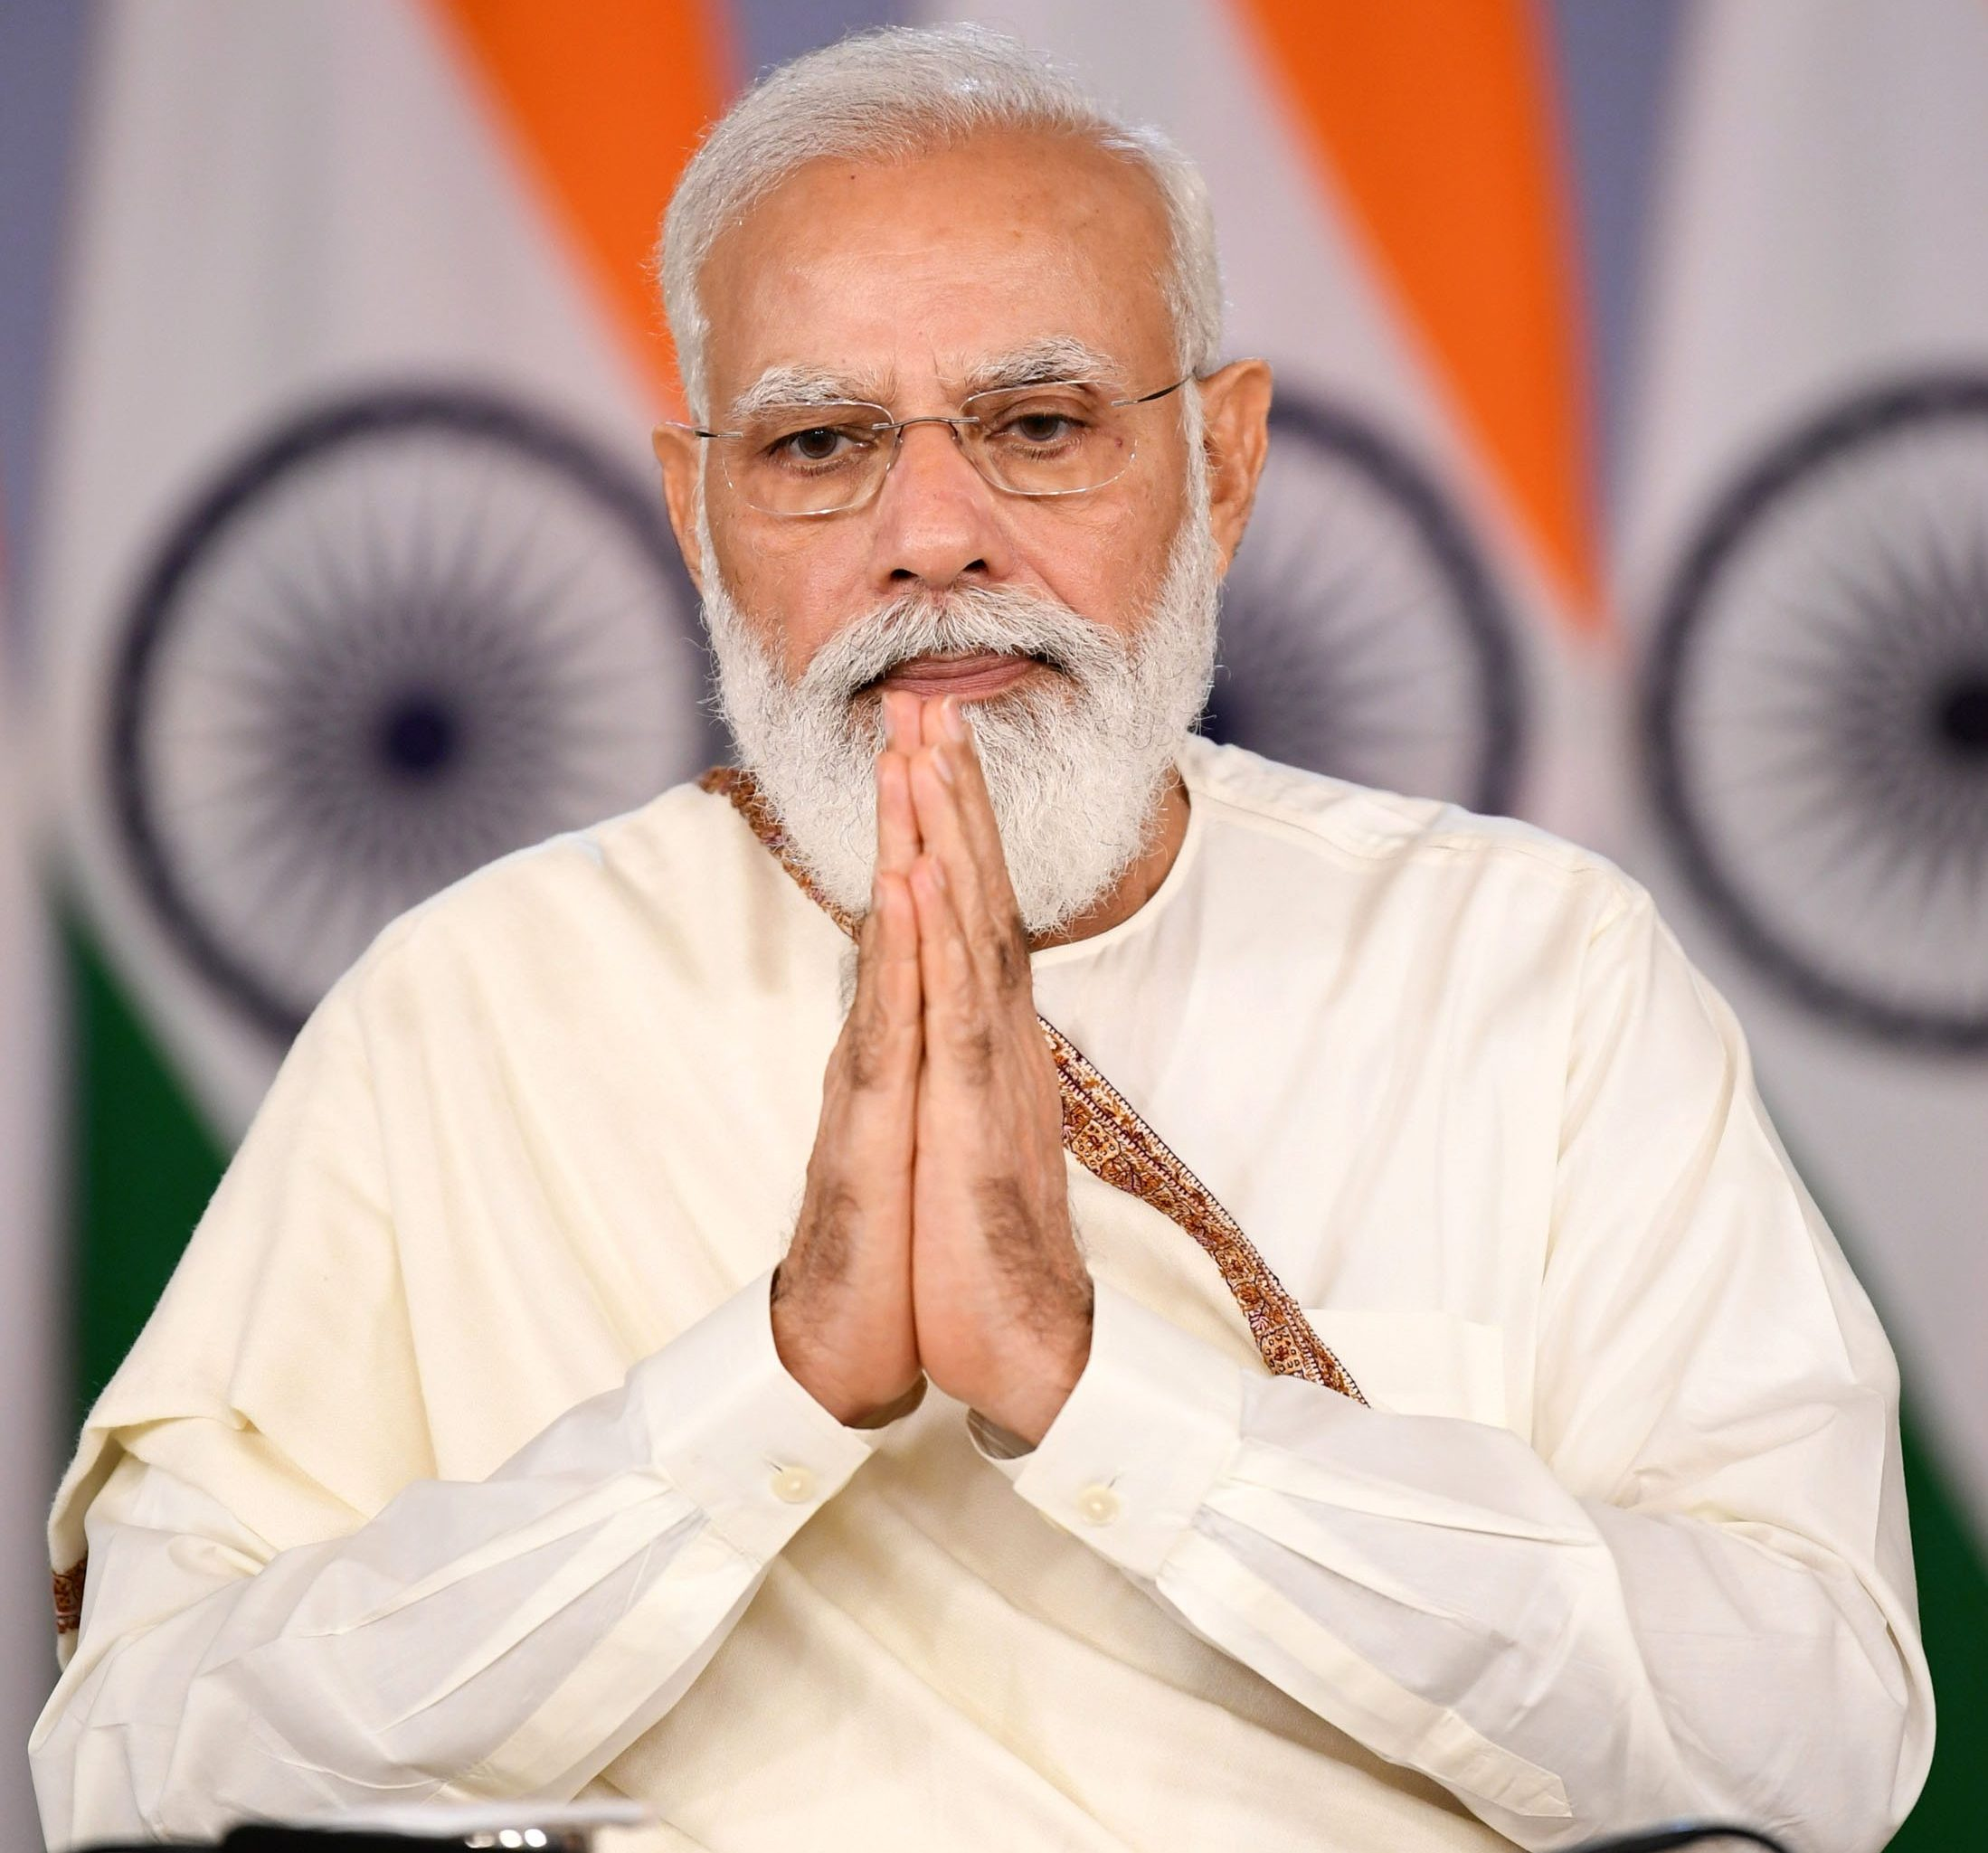 The Prime Minister, Shri Narendra Modi at the inauguration of Infosys Foundation Vishram Sadan at National Cancer Institute, Jhajjar, through video conferencing, in New Delhi on October 21, 2021.